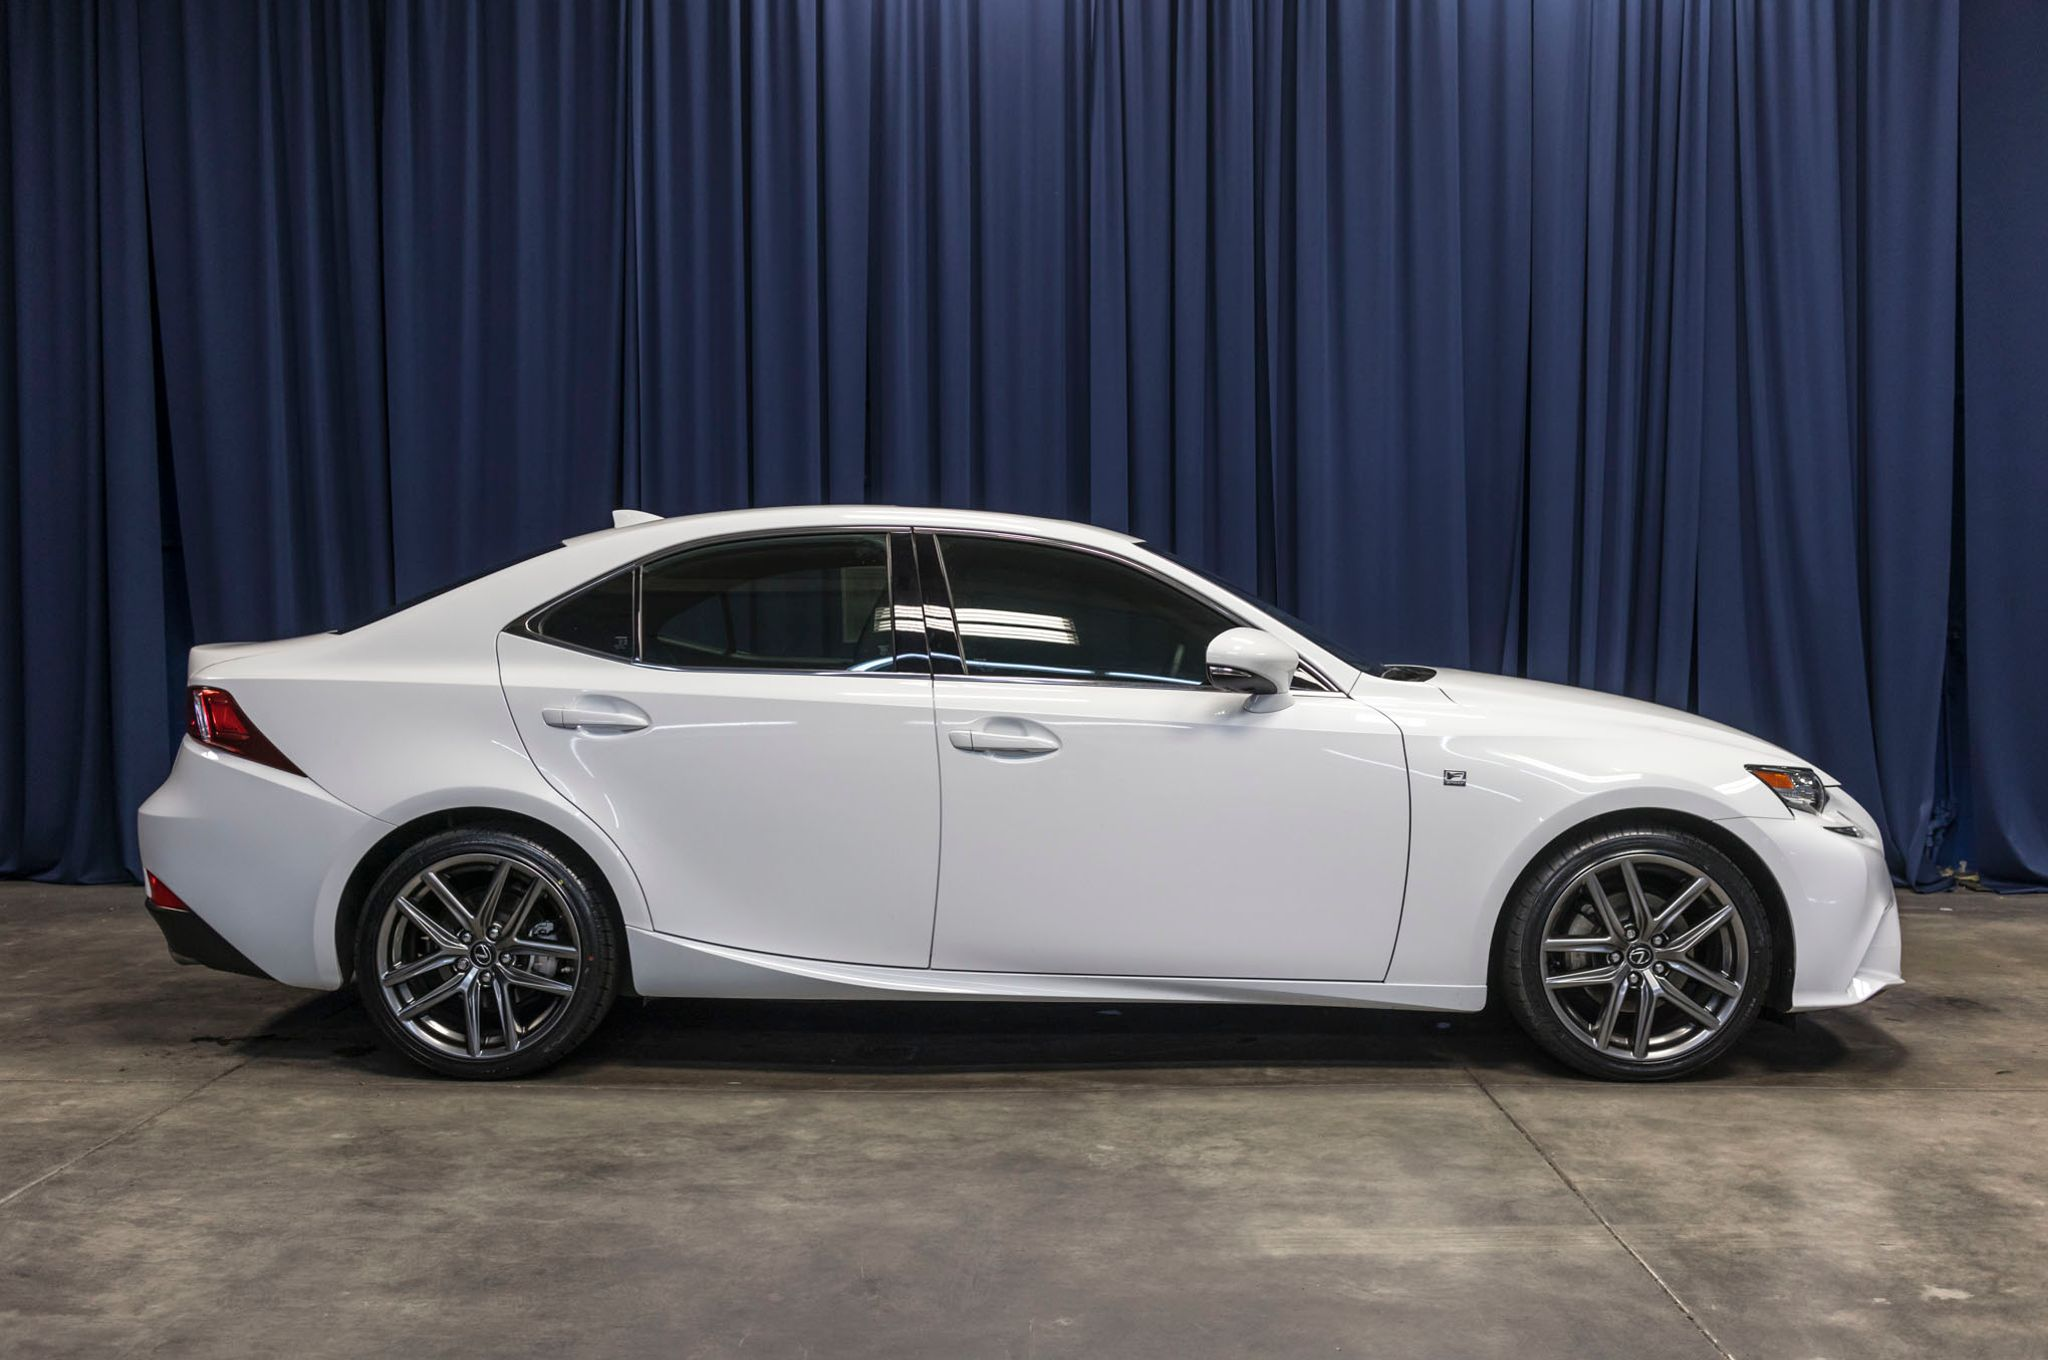 used 2014 lexus is250 f sport rwd sedan for sale 45758. Black Bedroom Furniture Sets. Home Design Ideas